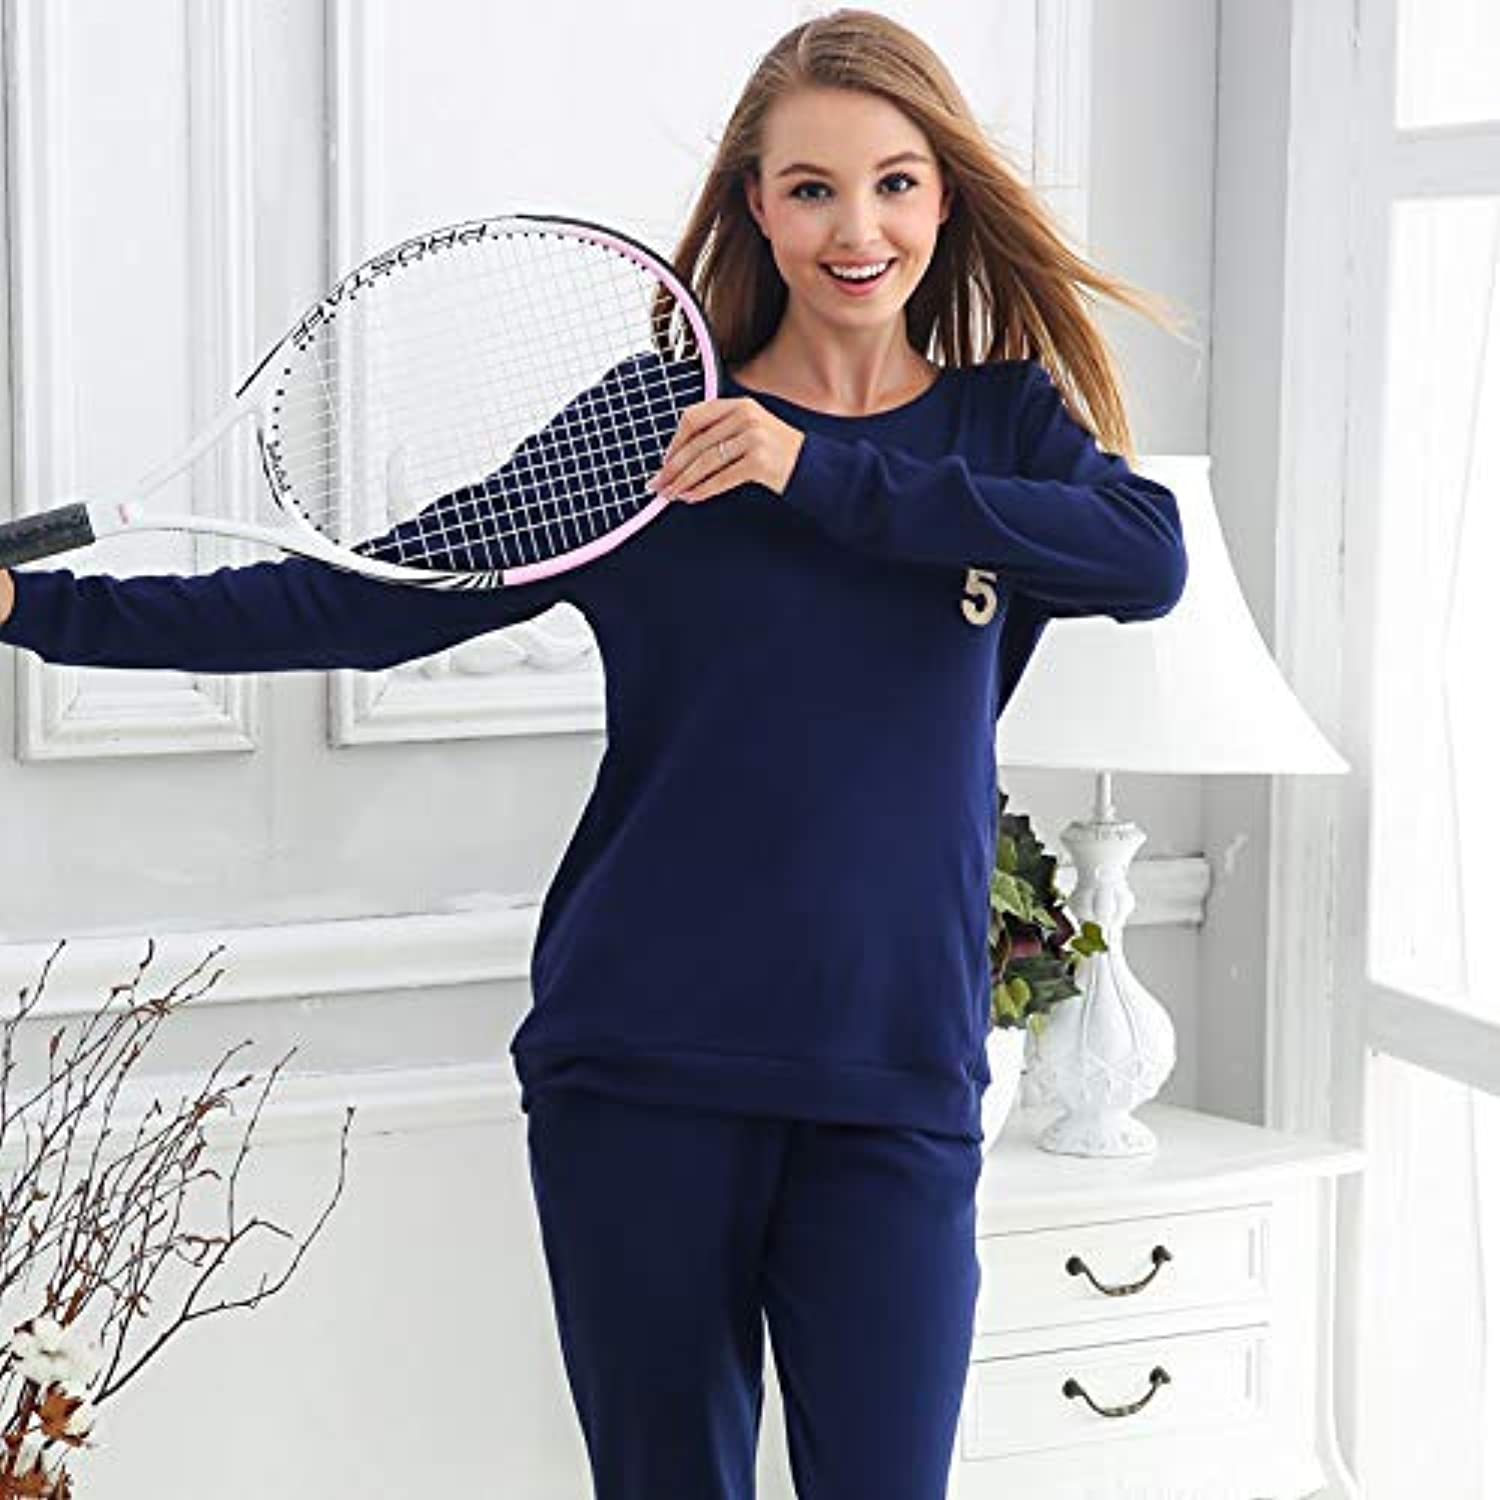 Cute Pajamas Spring and Autumn Korean Women's Loose Cotton Pajamas LongSleeved Casual Sports Cotton can be Worn Outside Home Service Suits (color   Navy bluee, Size   L) Sexy Sleepwear